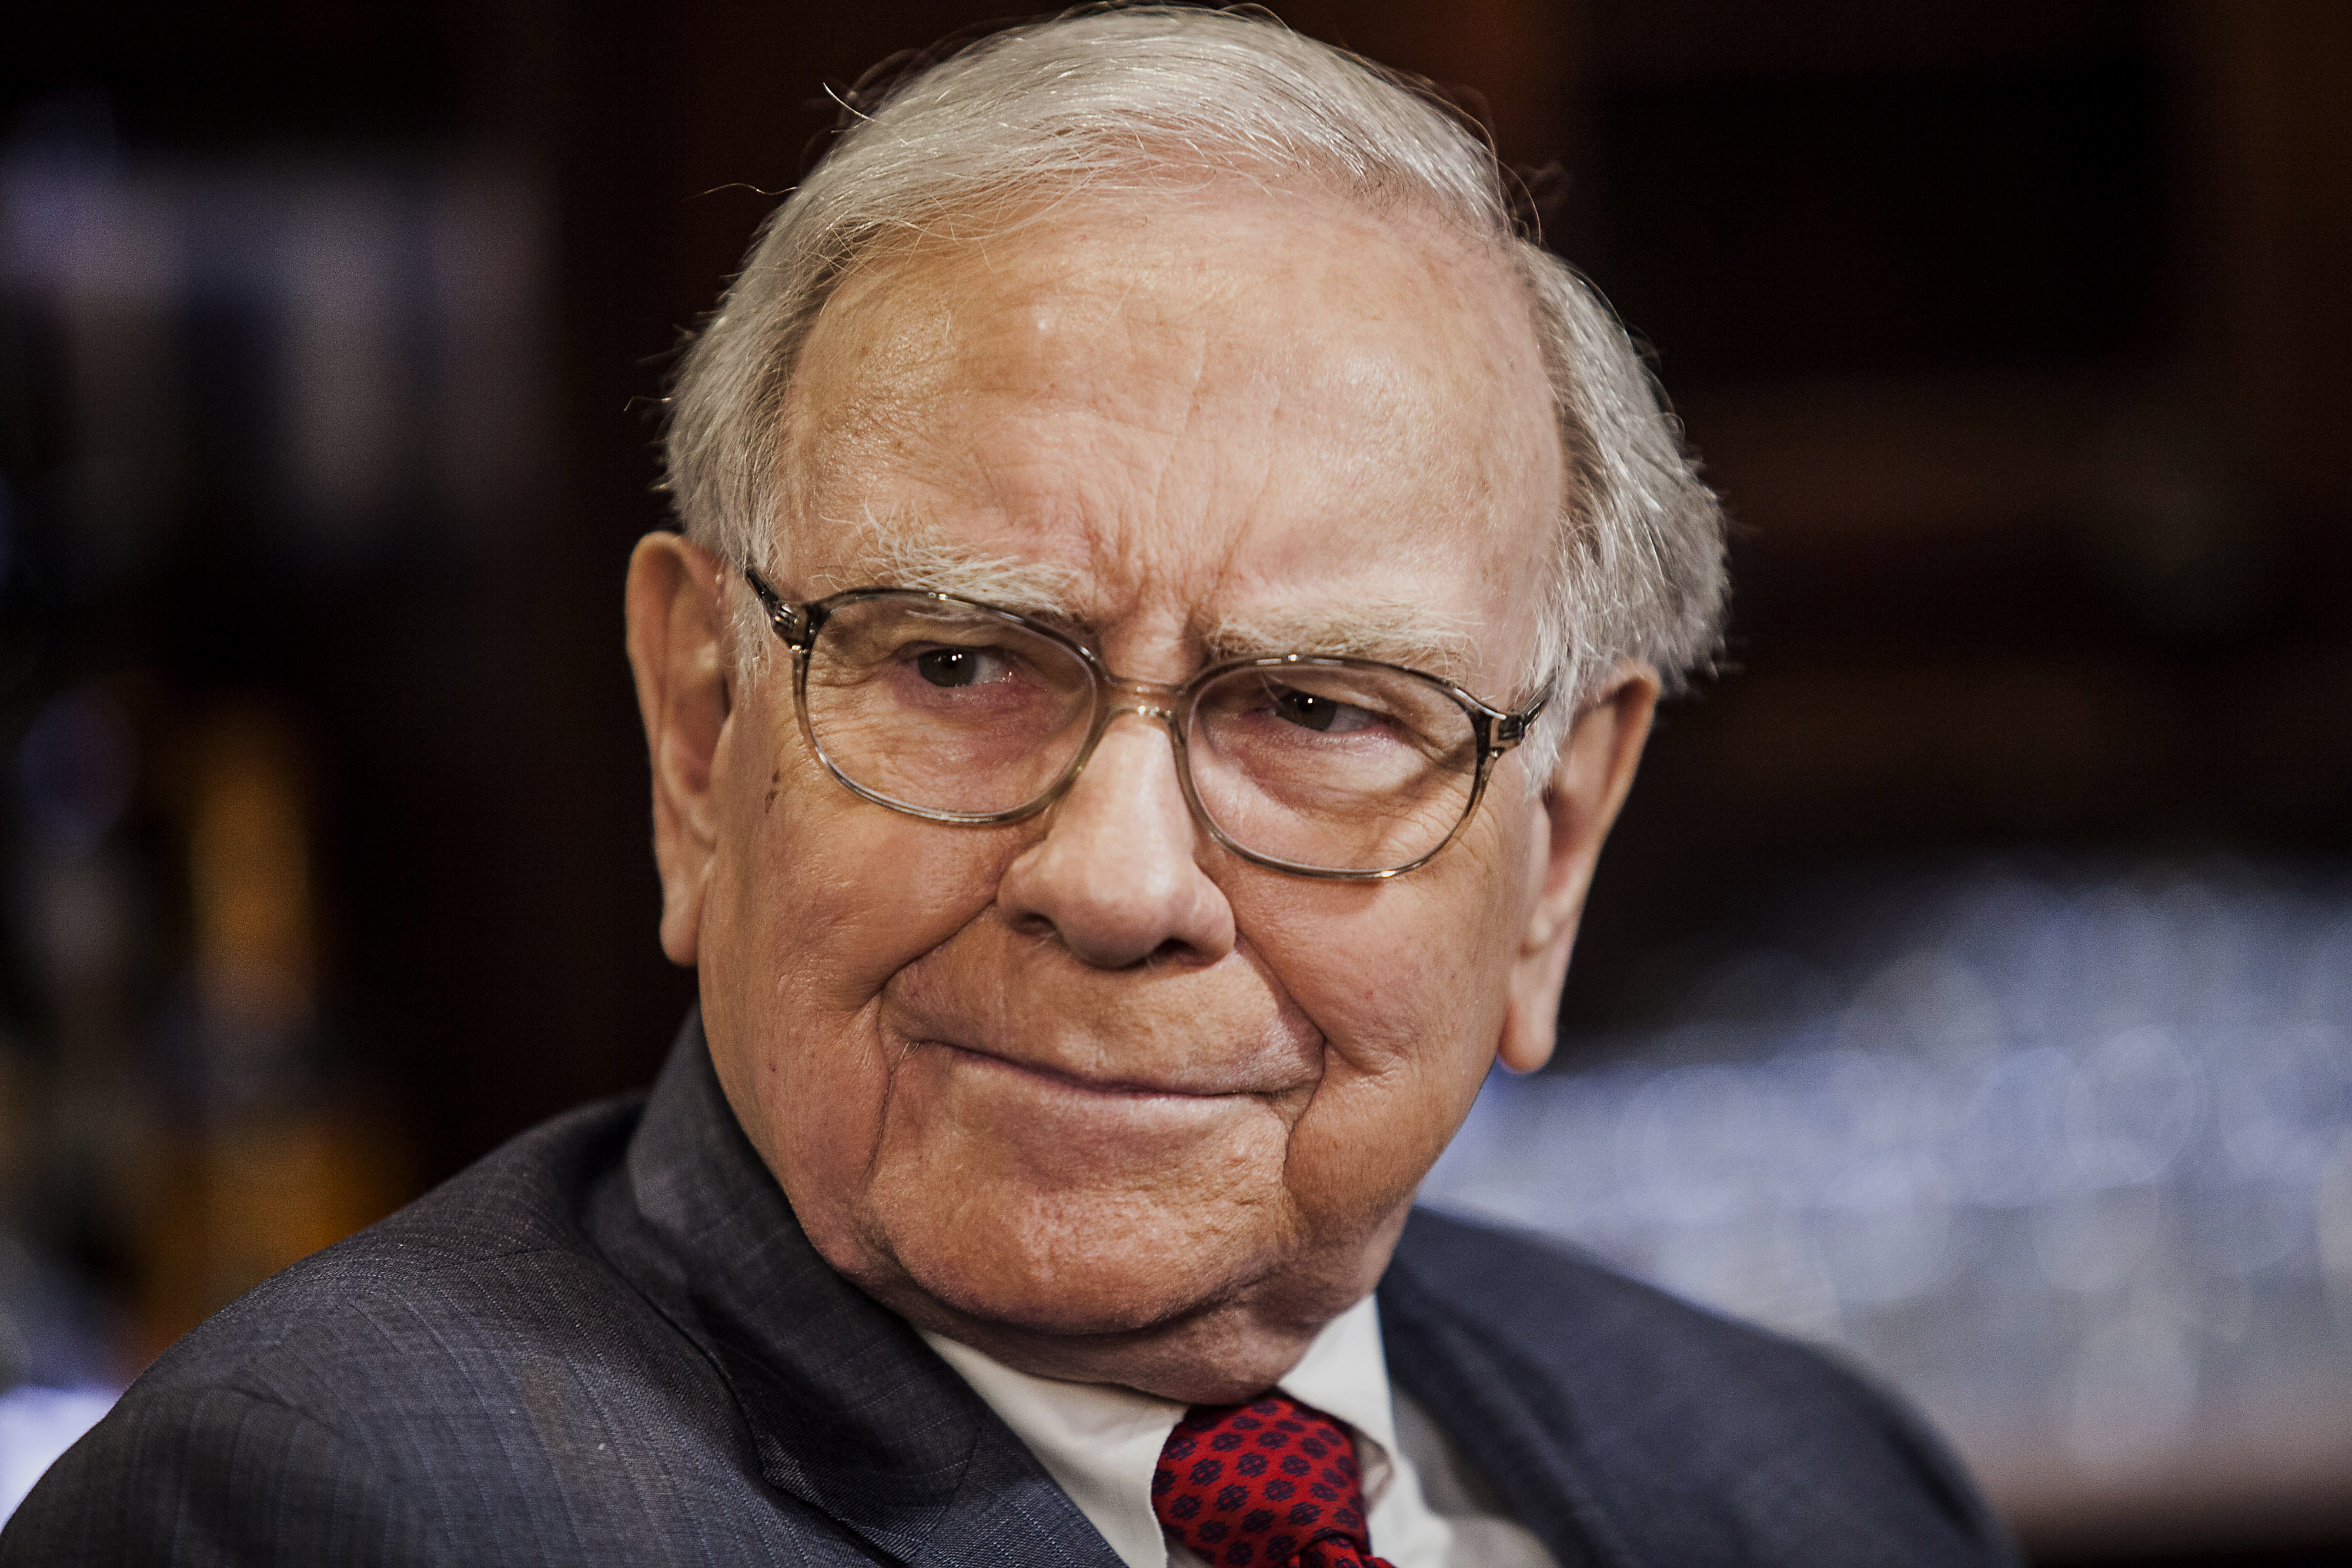 Warren Buffet during a Bloomberg Television Interview in New York City on April 23, 2014.